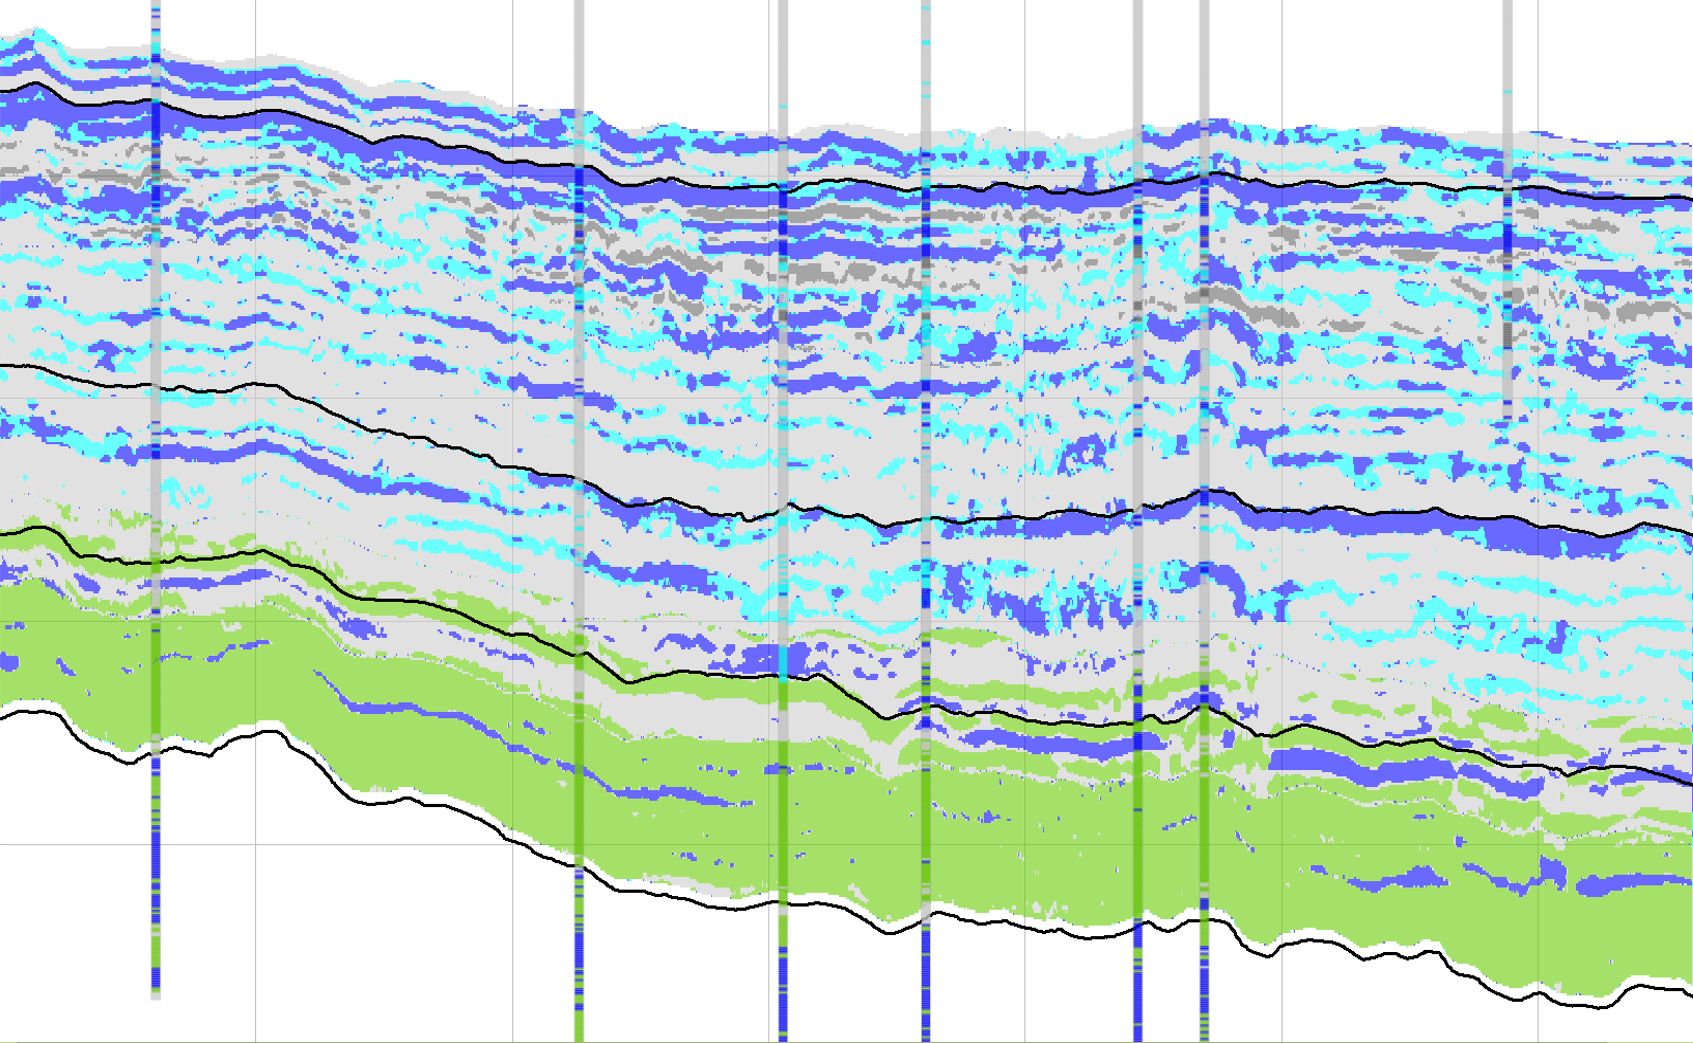 A technology by Ikon and Fairfield predicts rock properties, lithology, fluid content and flow characteristics of reservoirs.